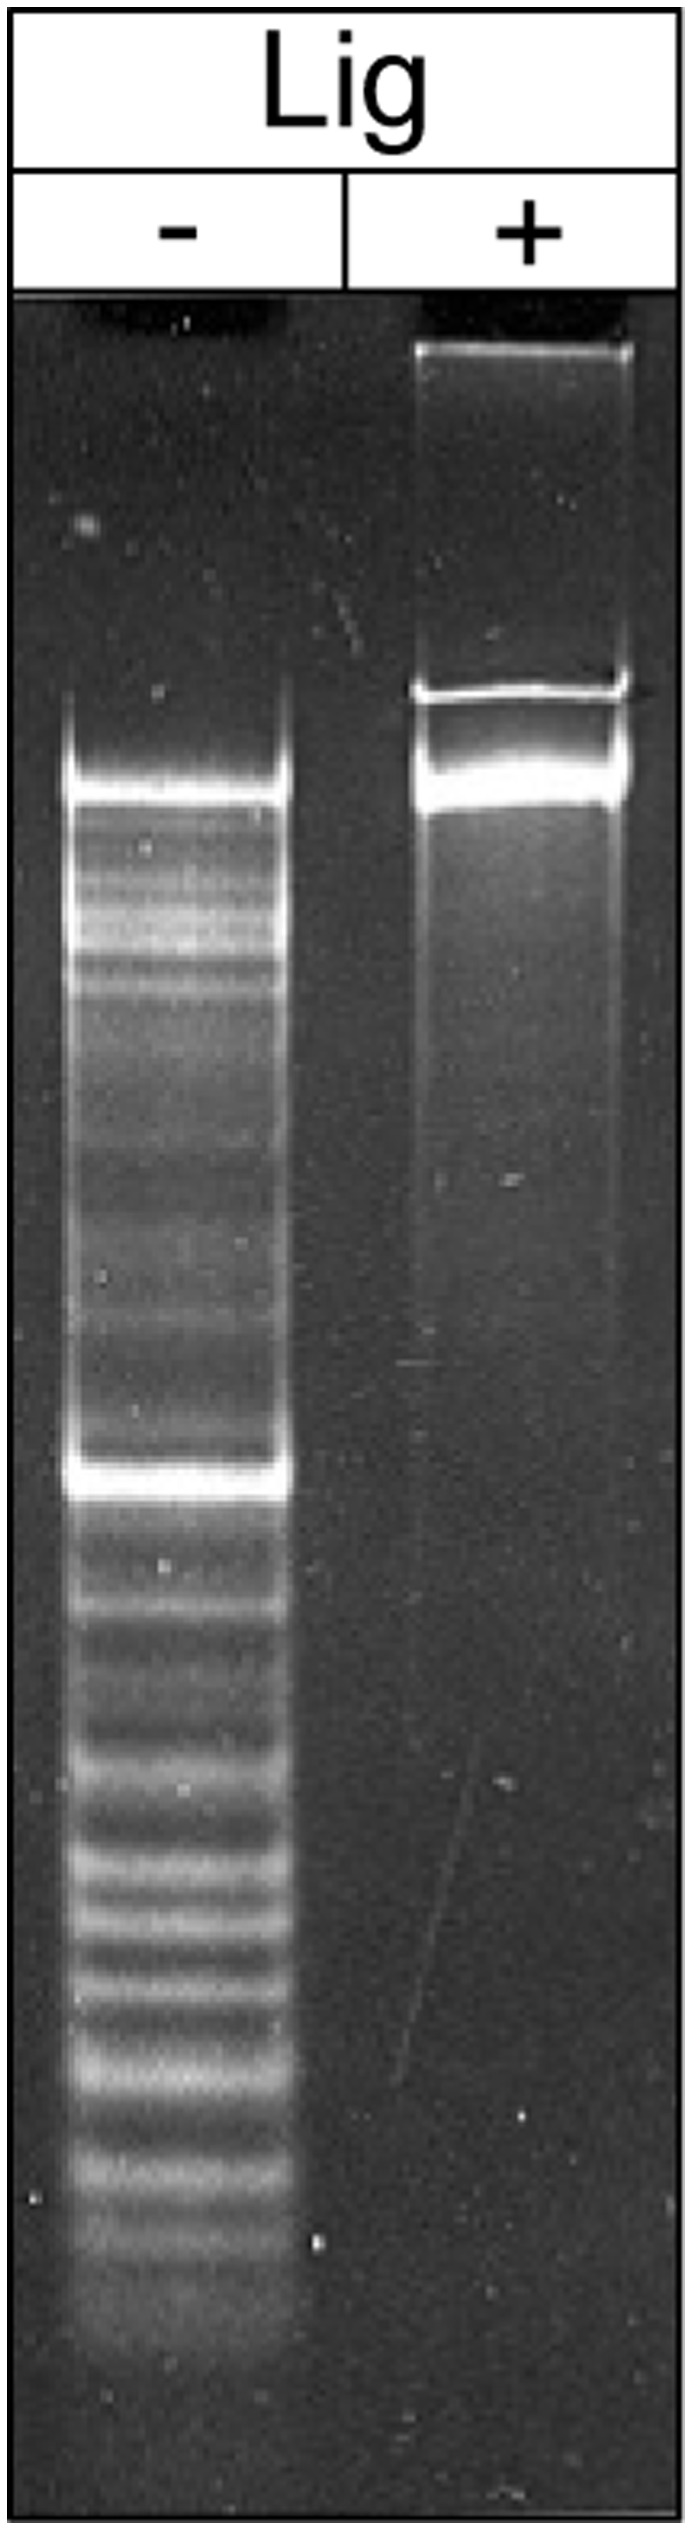 Identification and analysis of the localized nicks in tf DNA molecules. DNA preparation of bacteriophage tf was denatured in 0.1 M NaOH and subjected to electrophoresis in 0.9% agarose gel; in a control experiment a DNA from the same preparation was treated with T4 DNA ligase prior to denaturing in 0.1 M NaOH and electrophoresis.